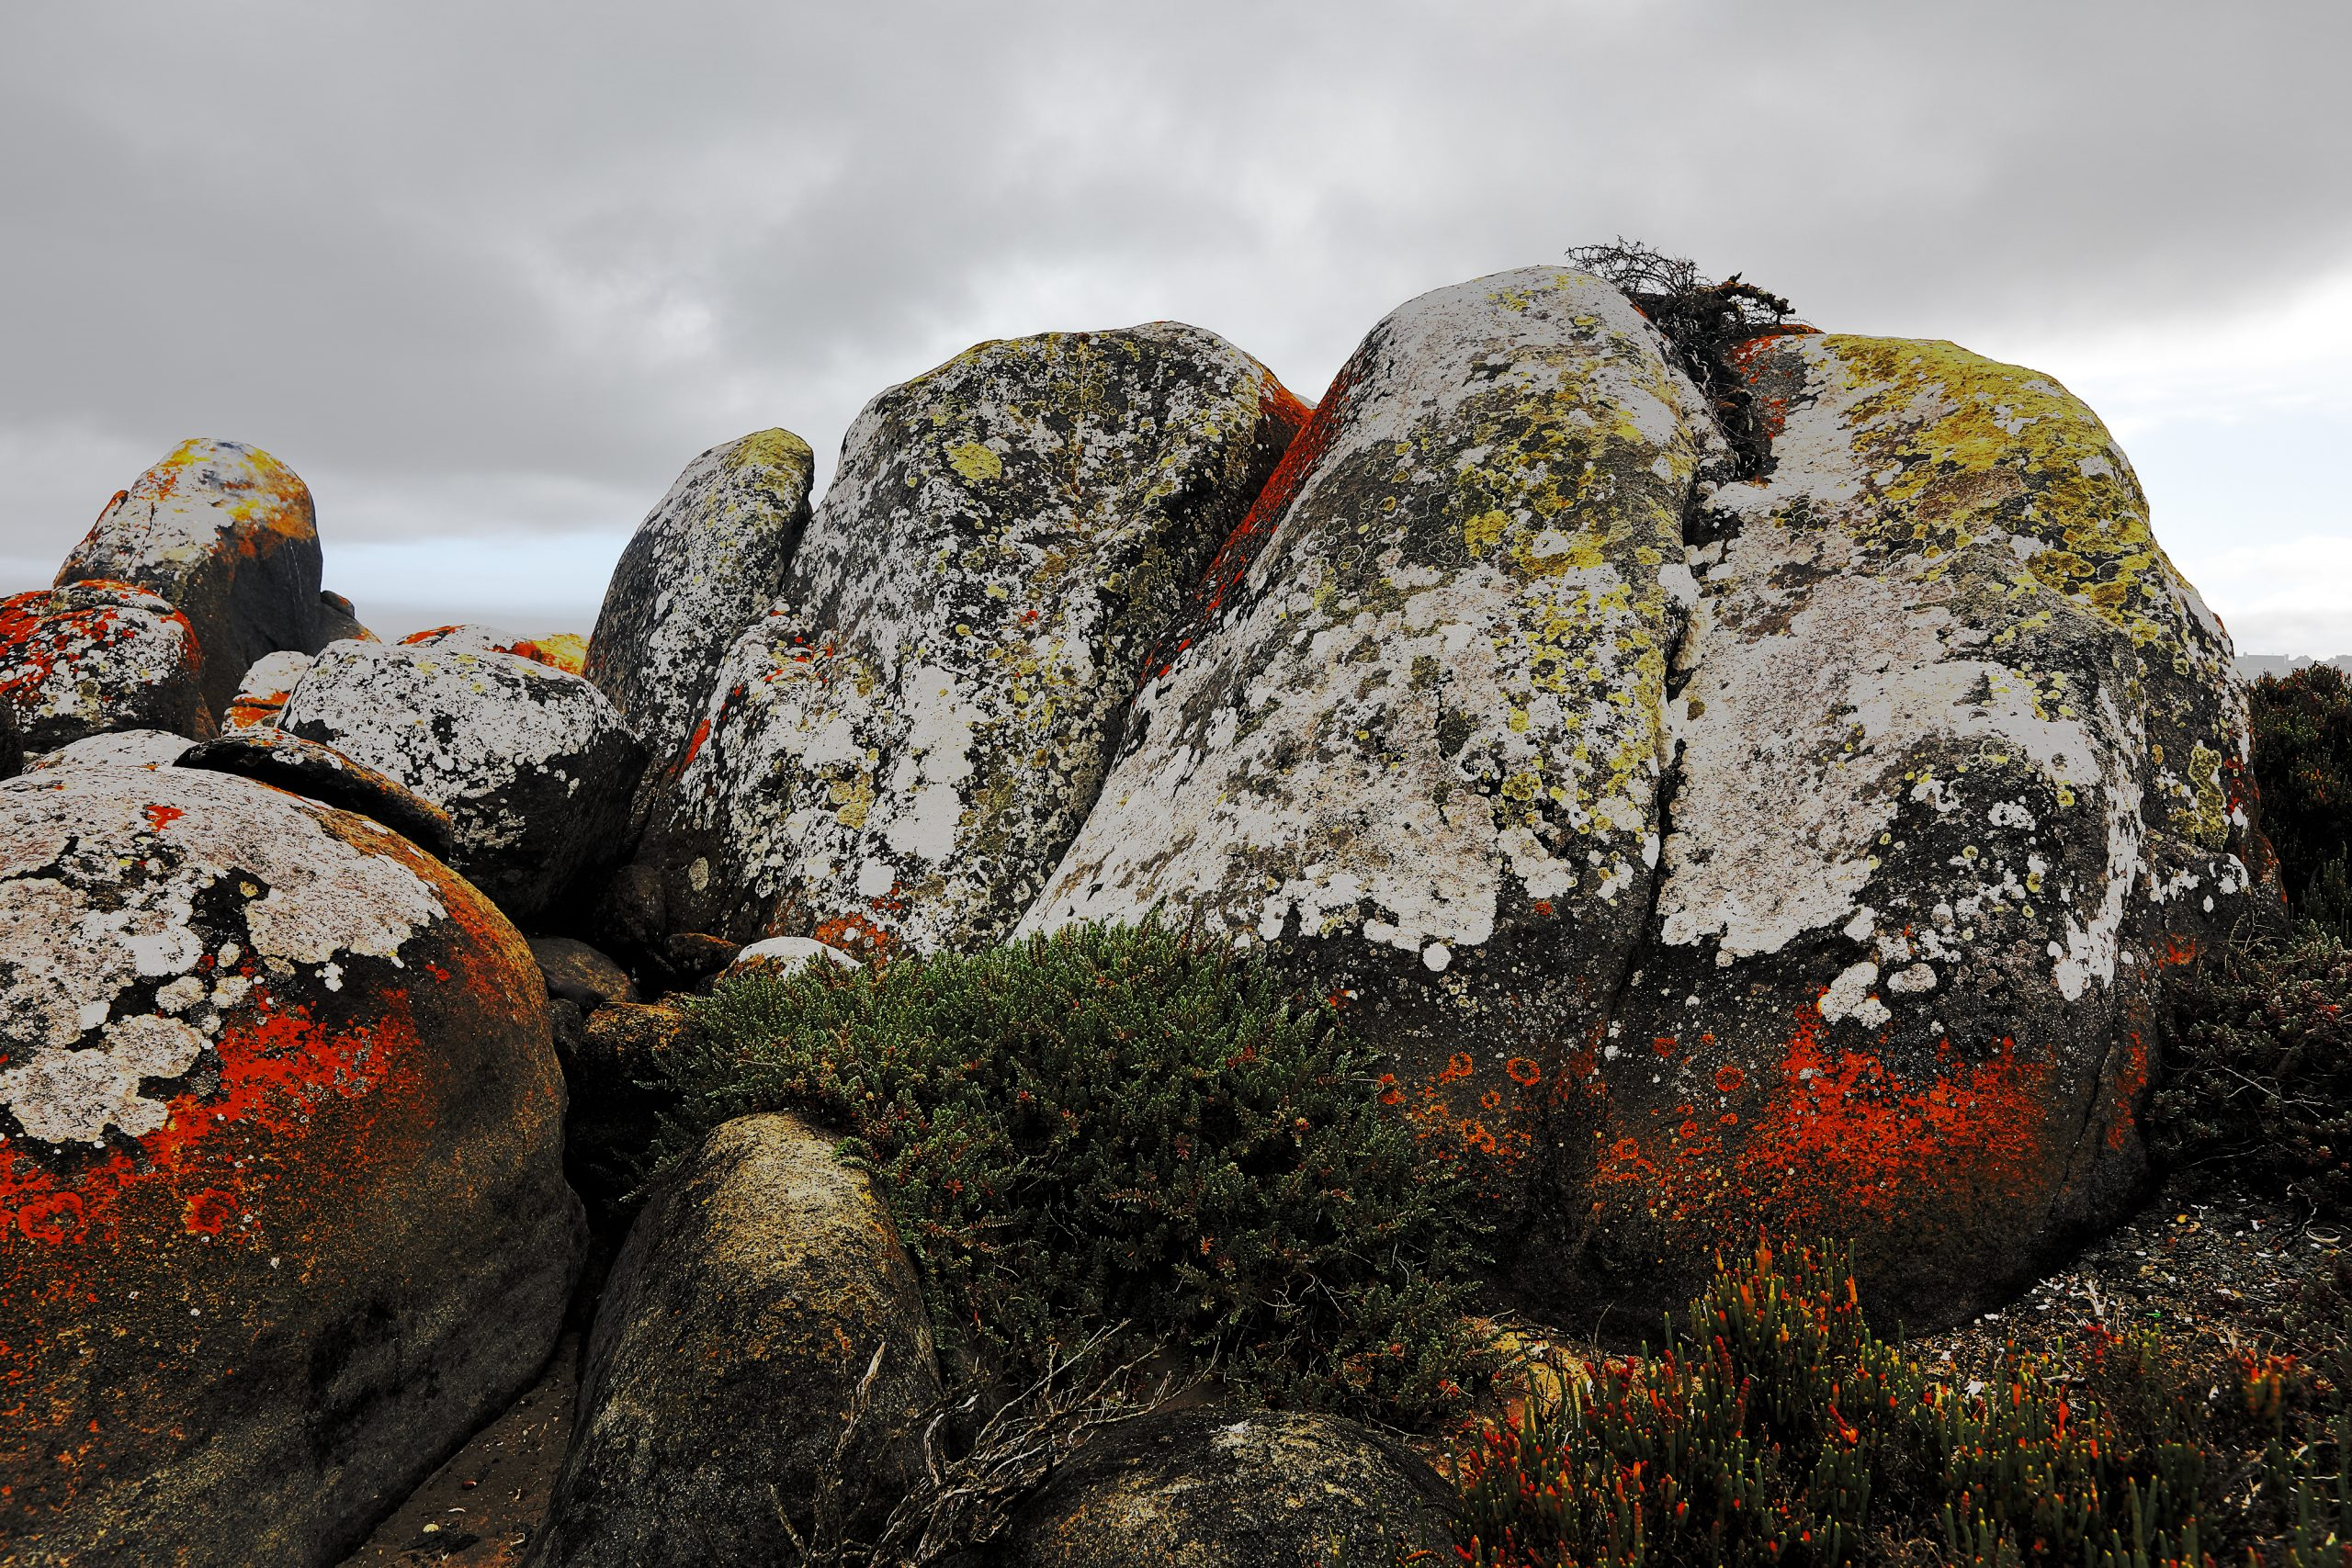 Granite boulders covered with moss